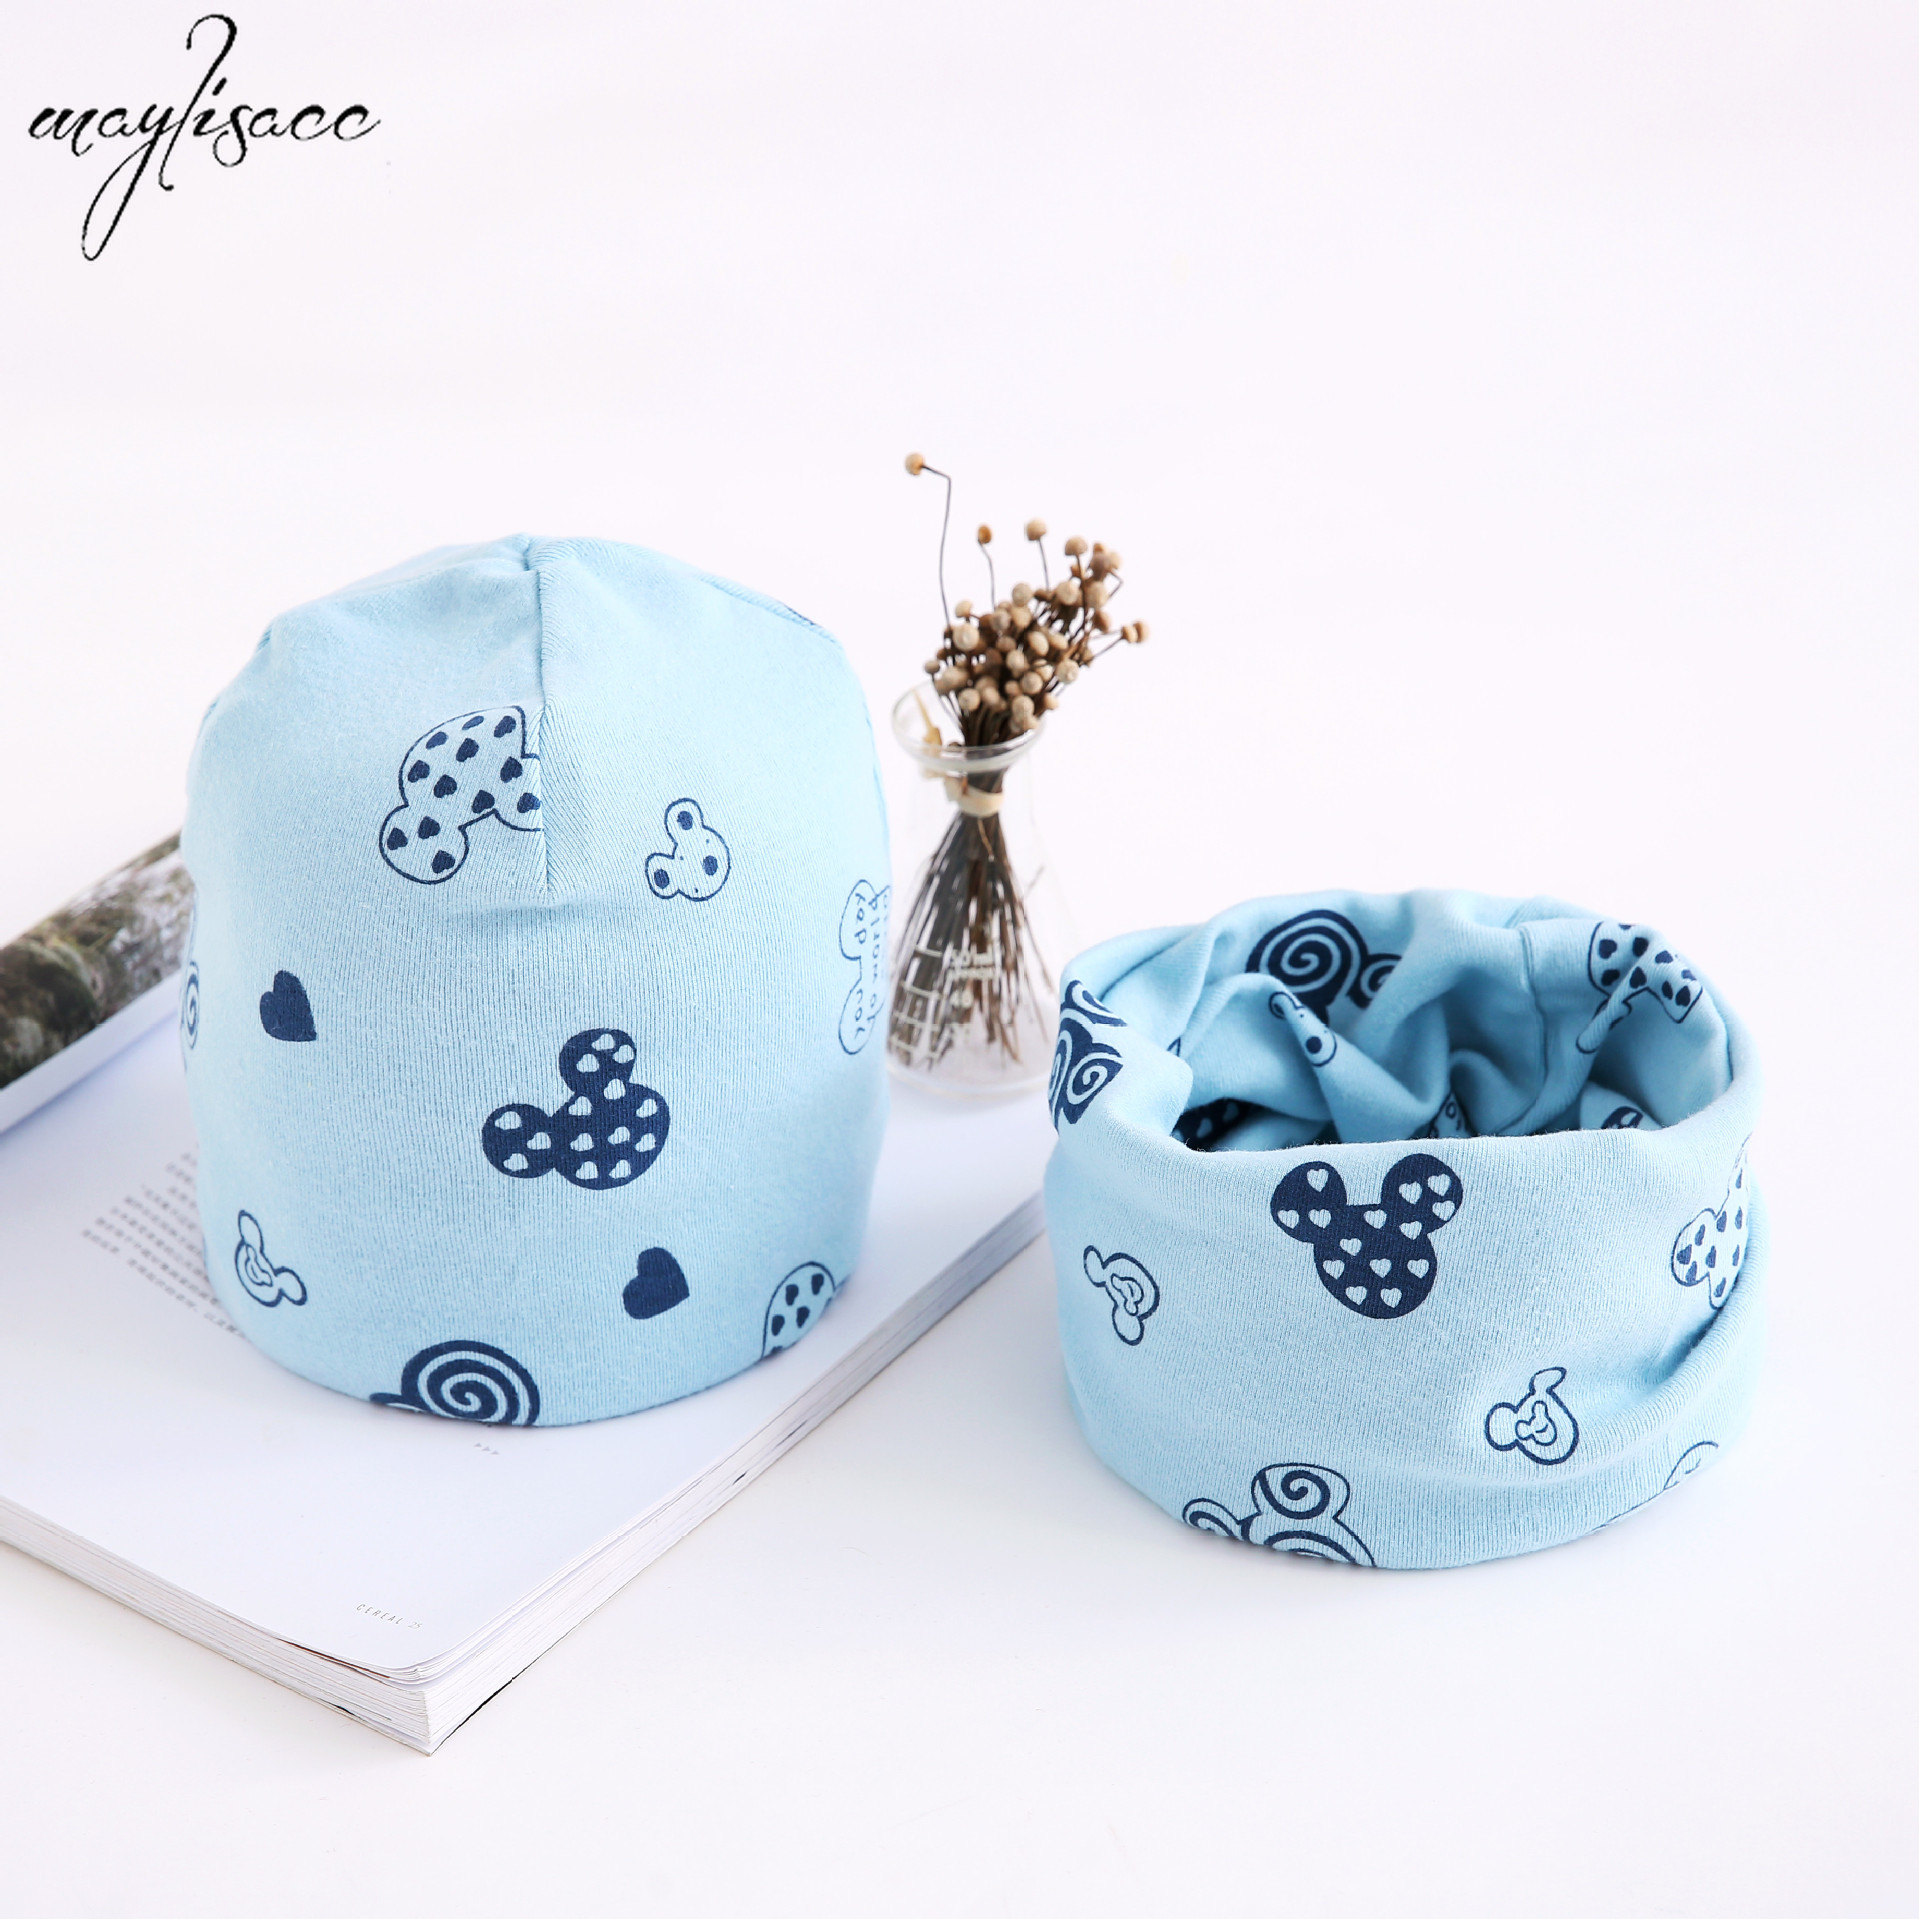 Maylisacc Autumn And Winter New Scarf Hat Two-piece Set 0-8 Years Old Baby Cotton Collar Hat Suit Children's Beanie Snood Sets